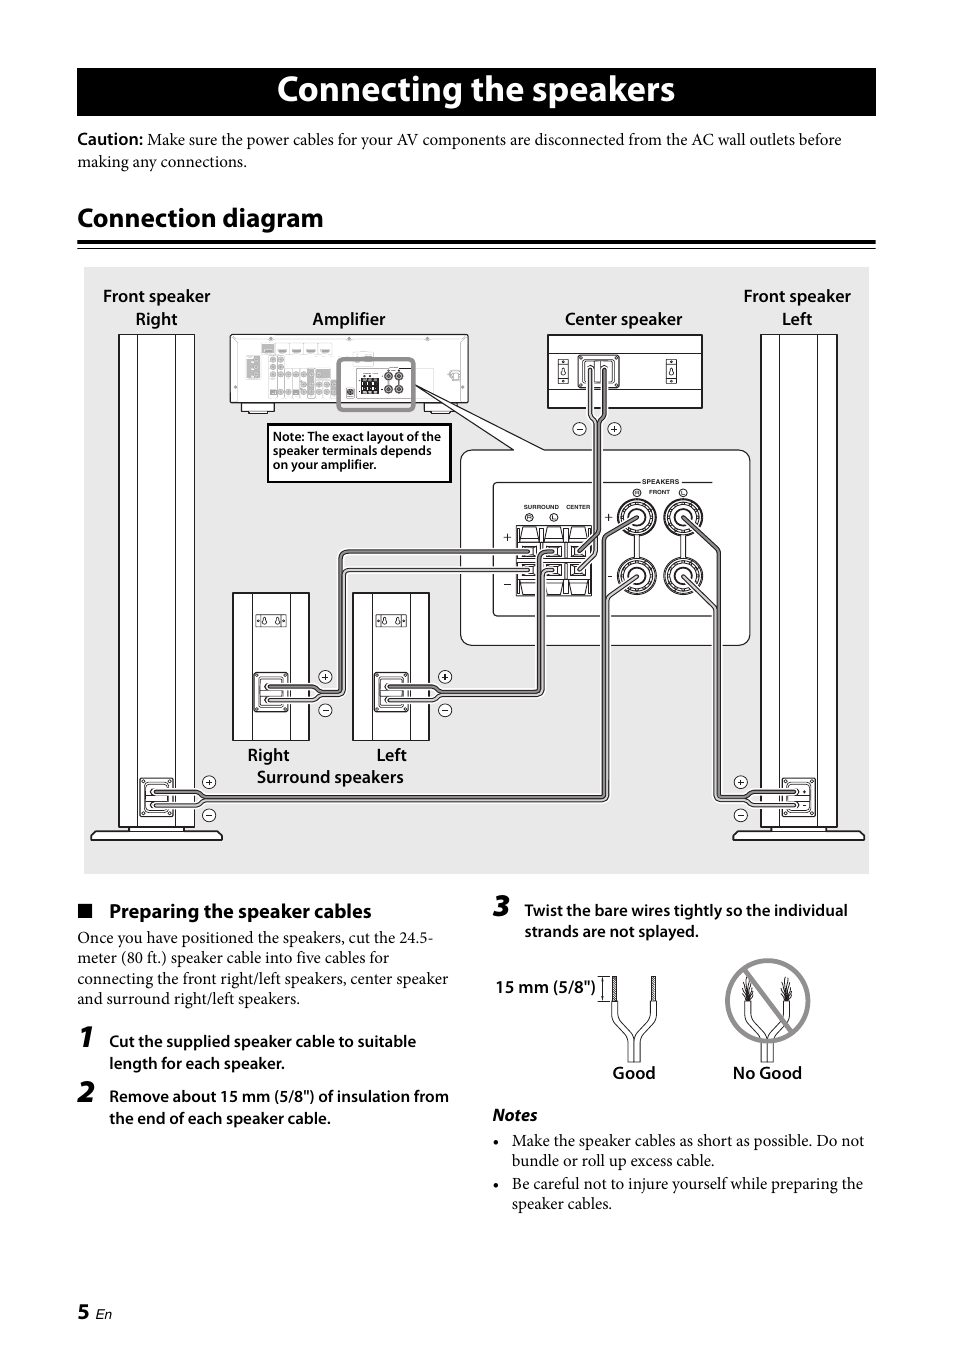 Diagram Amp Connected To Speakers Of 6 Electrical Wiring Diagrams 4 Channel Speaker Ricerche Correlate A Connecting The Connection Preparing Toyota Tundra